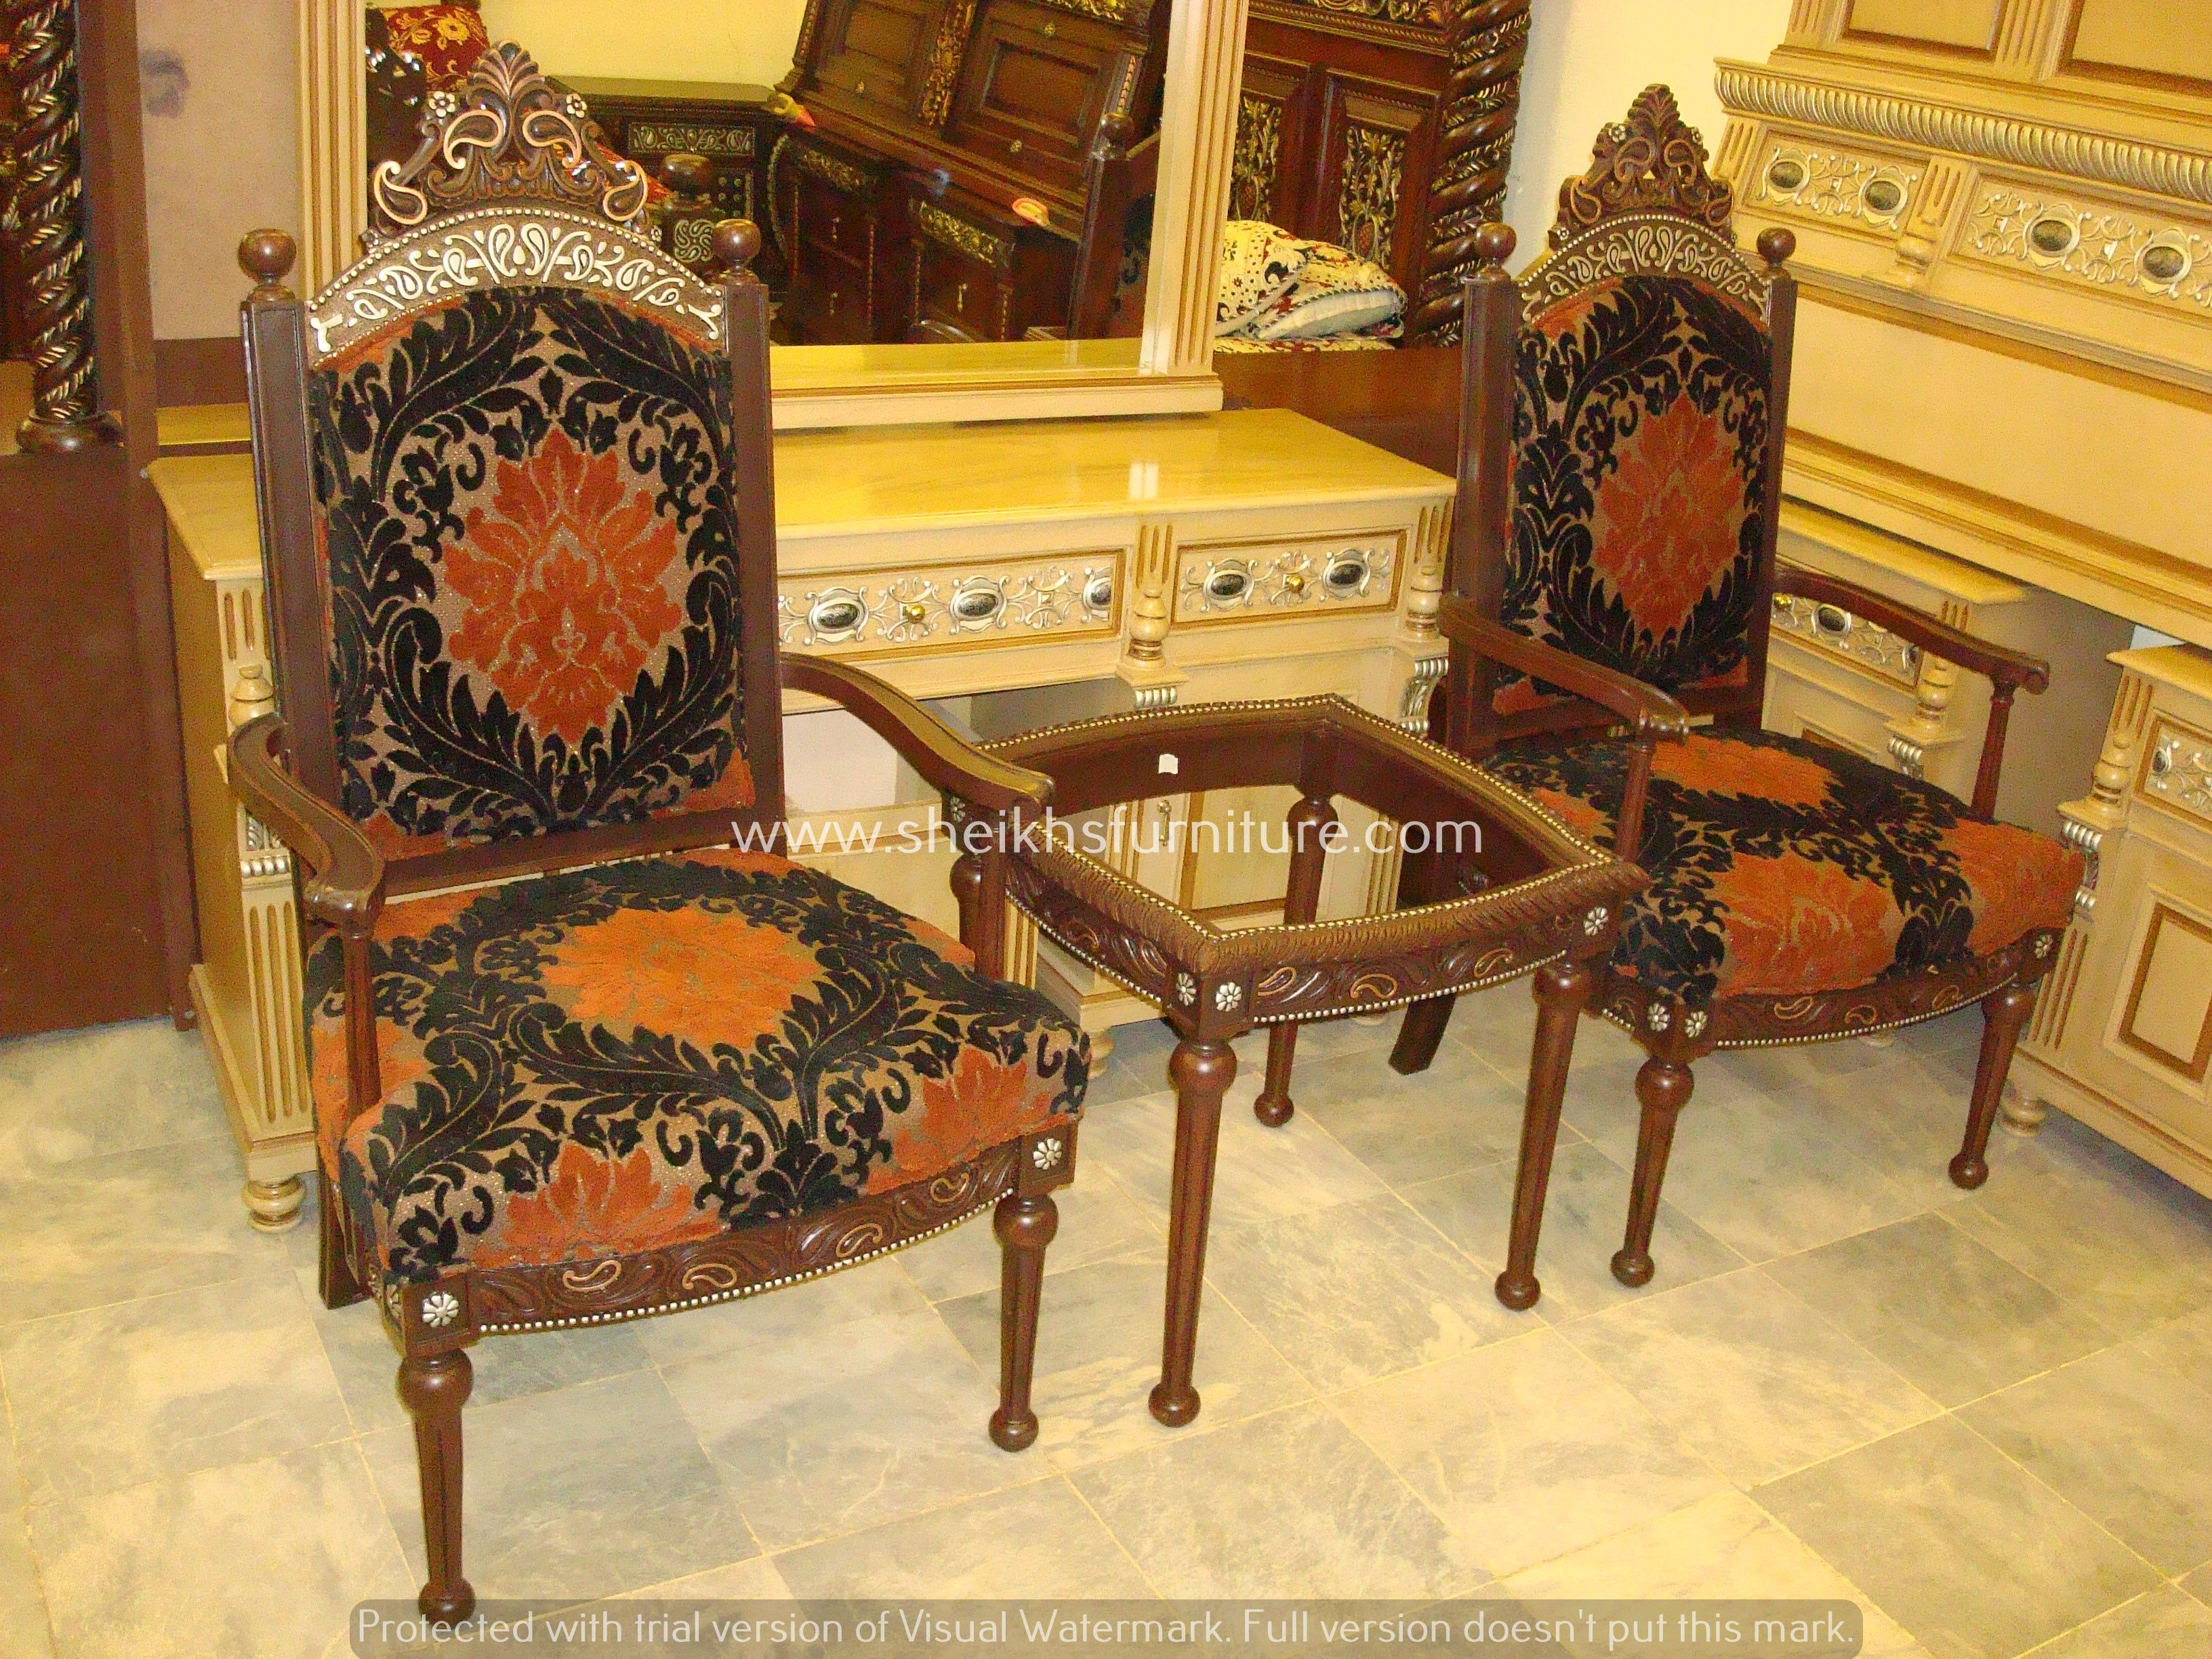 This is our solid rosewood classic bedroom chair set. This chair